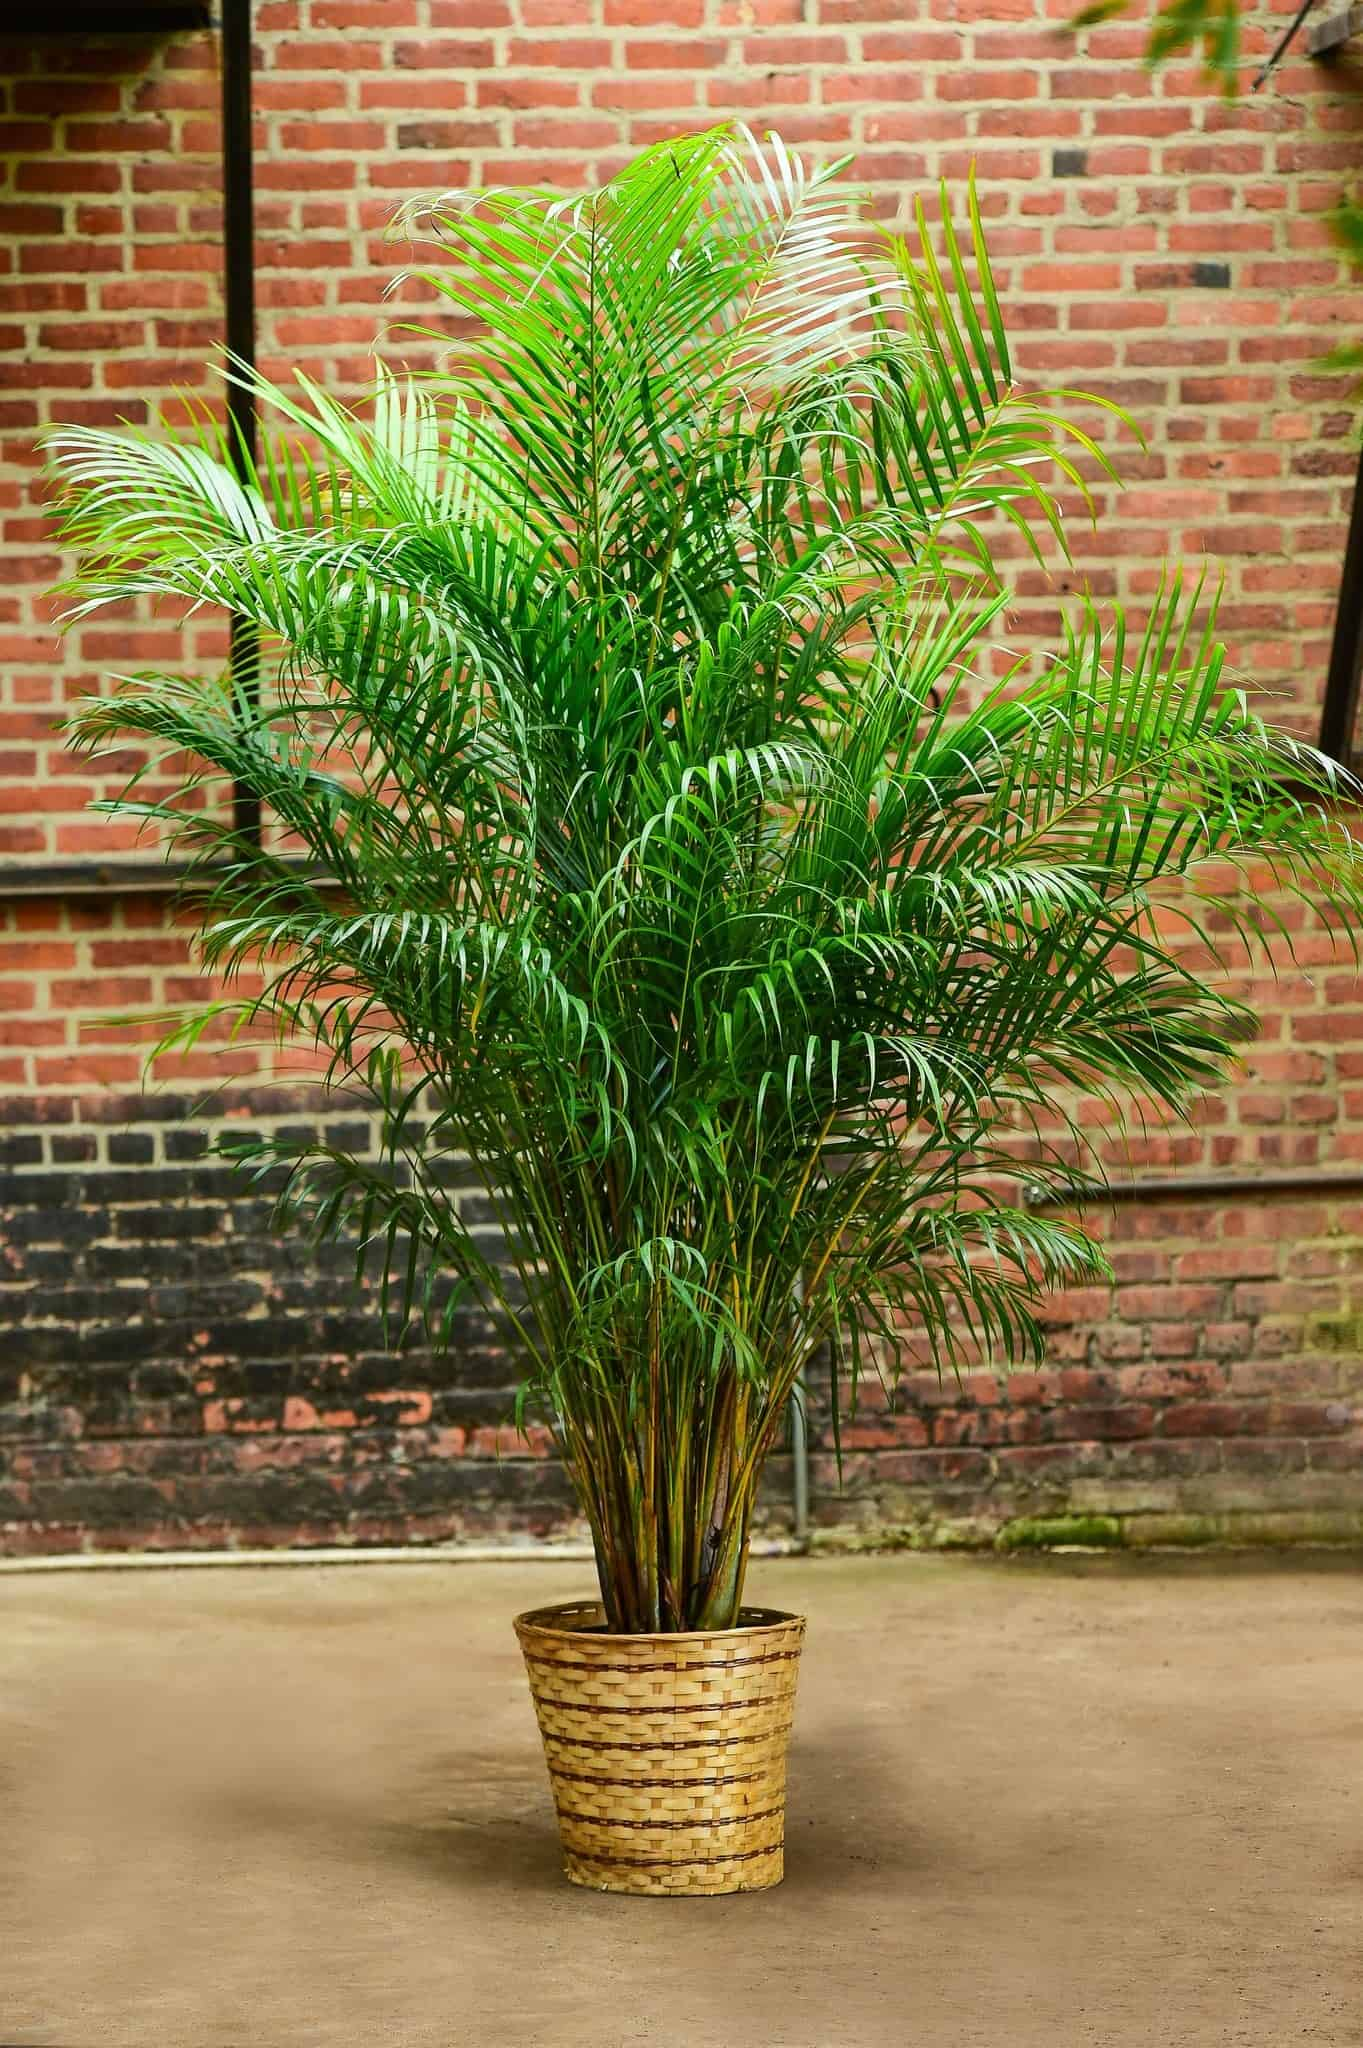 The Most Efficient Humidifier: Areca Palm